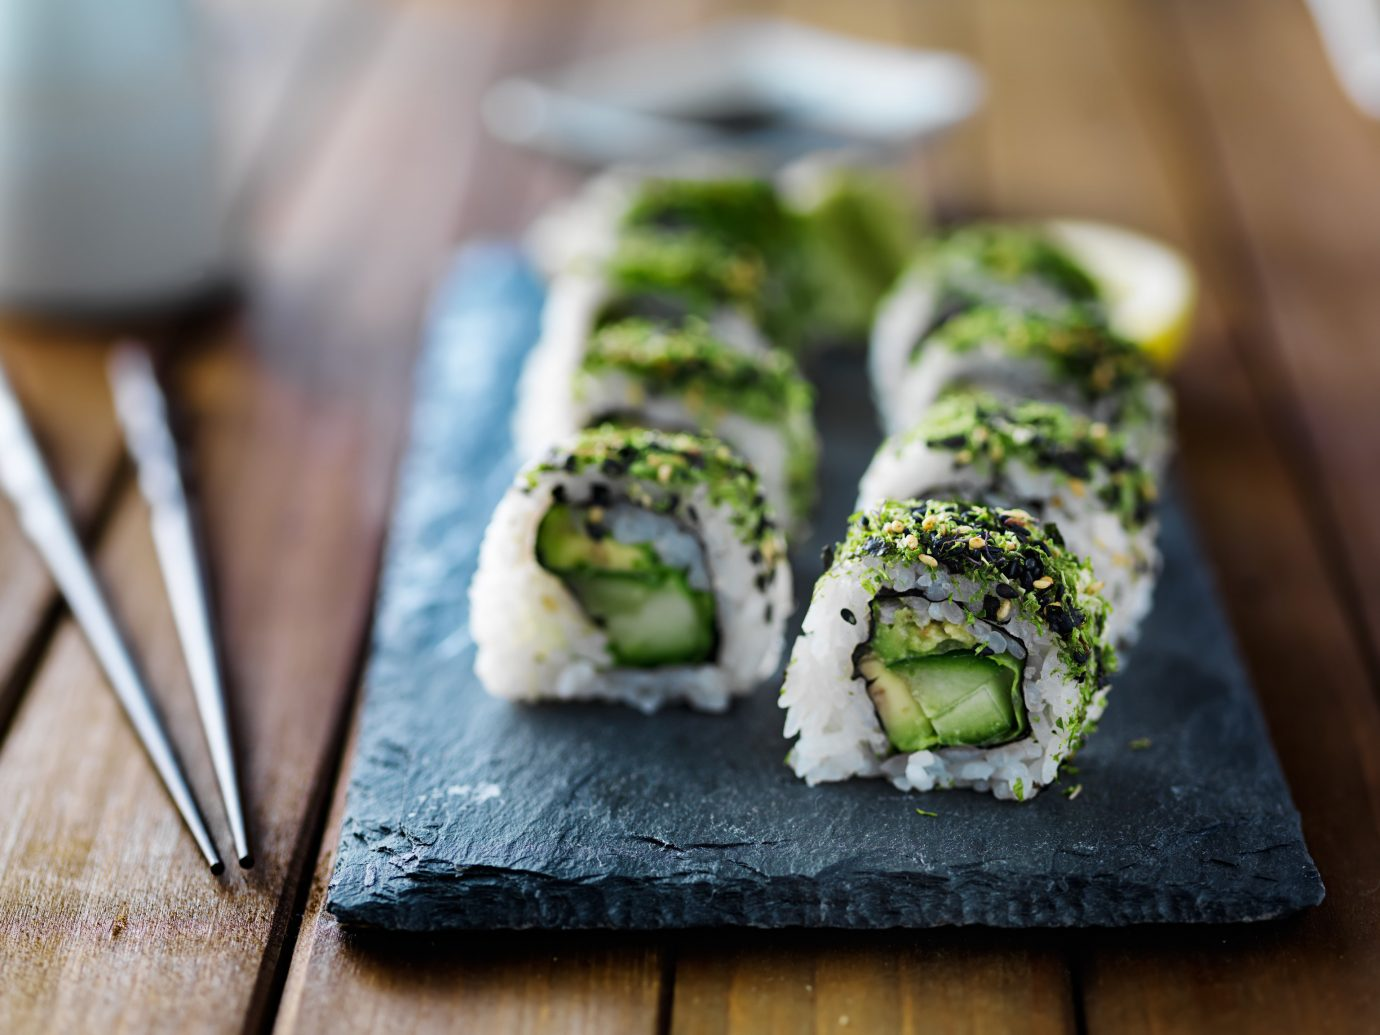 Trip Ideas dish food sushi indoor wooden cuisine piece produce gimbap asian food vegetable meal california roll chocolate slice dessert close square